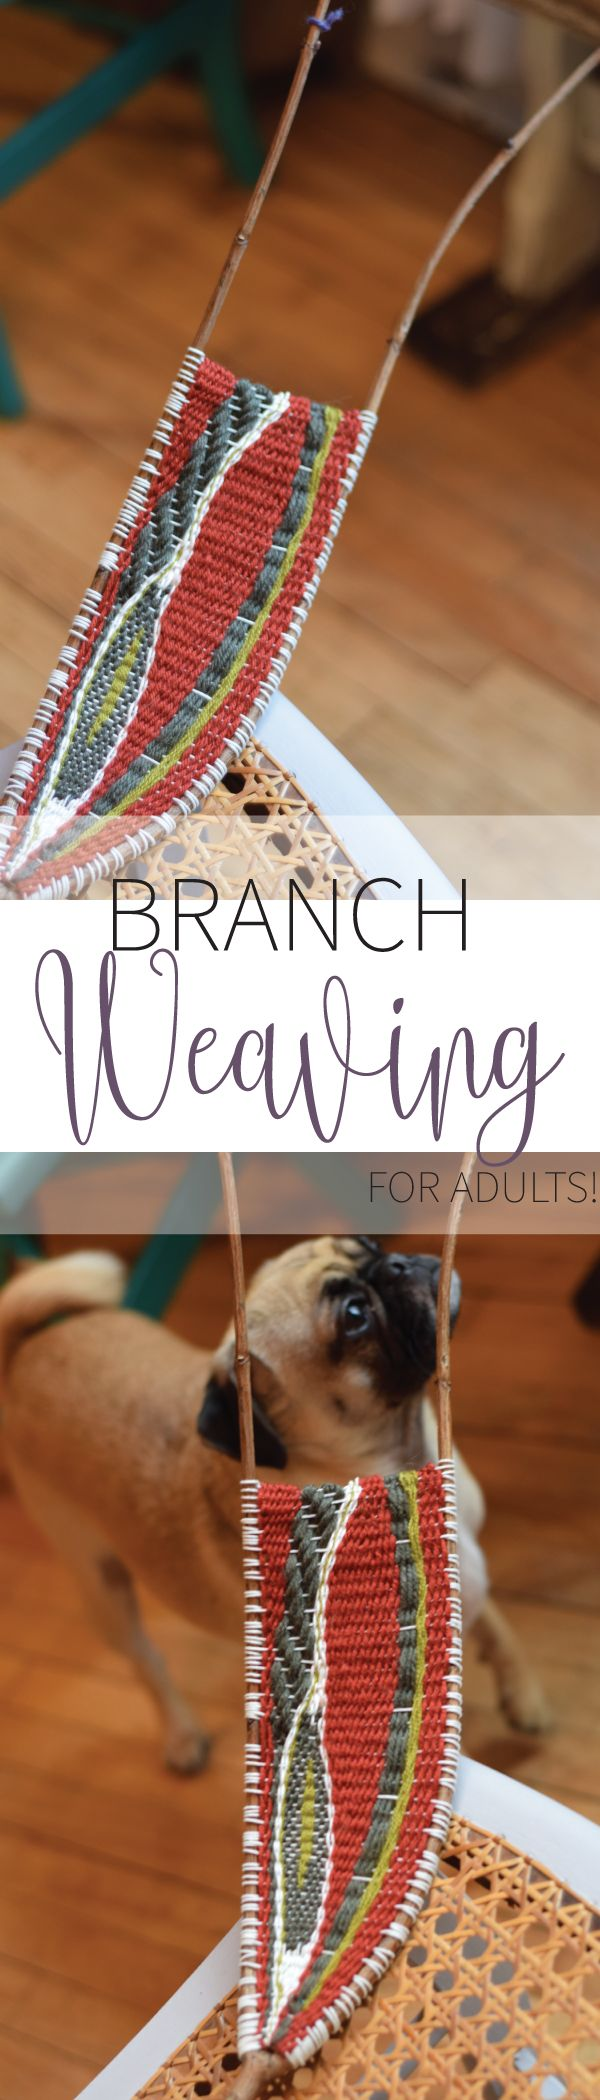 Learn branch weaving! Yes, it's a thing and it's THE new trendy craft to learn (for adults and kids). Detailed instructions inside! No experience needed.